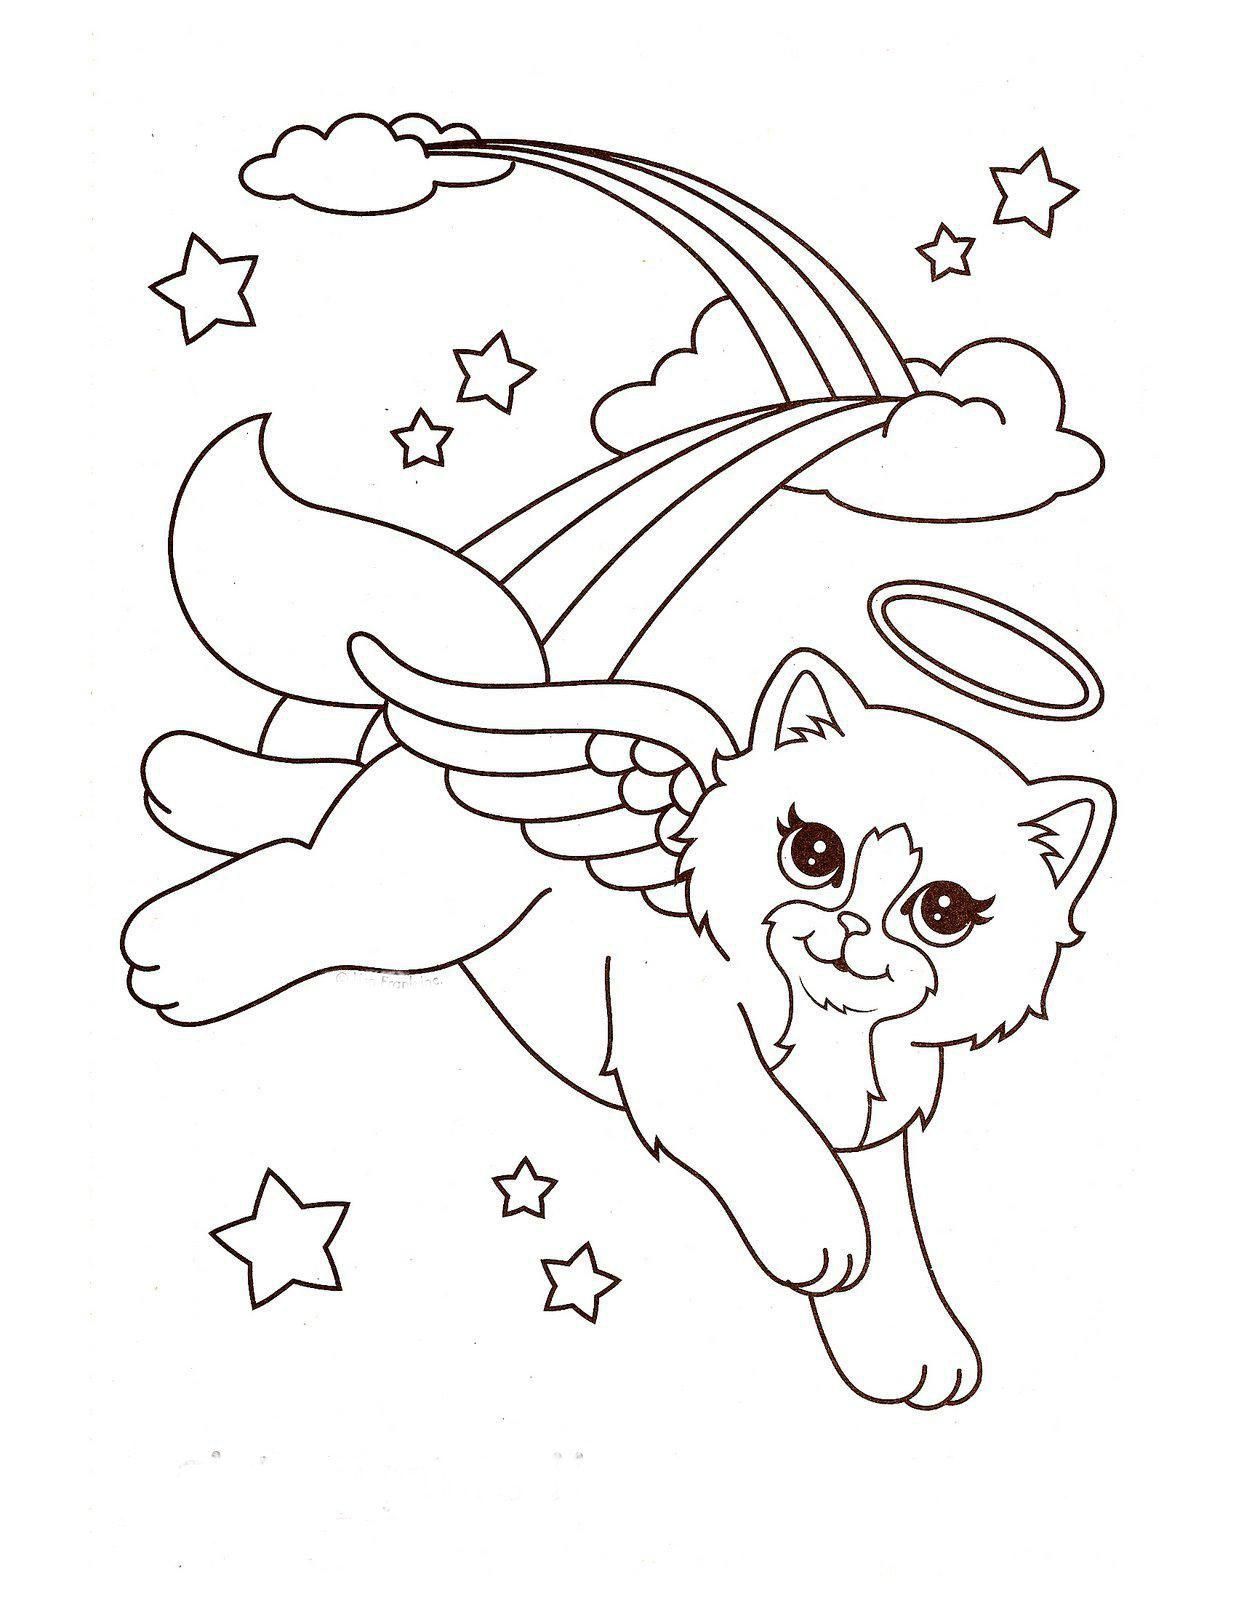 Printable Lisa Frank Coloring Pages Free Az Coloring Pages Free Frank Coloring Pages